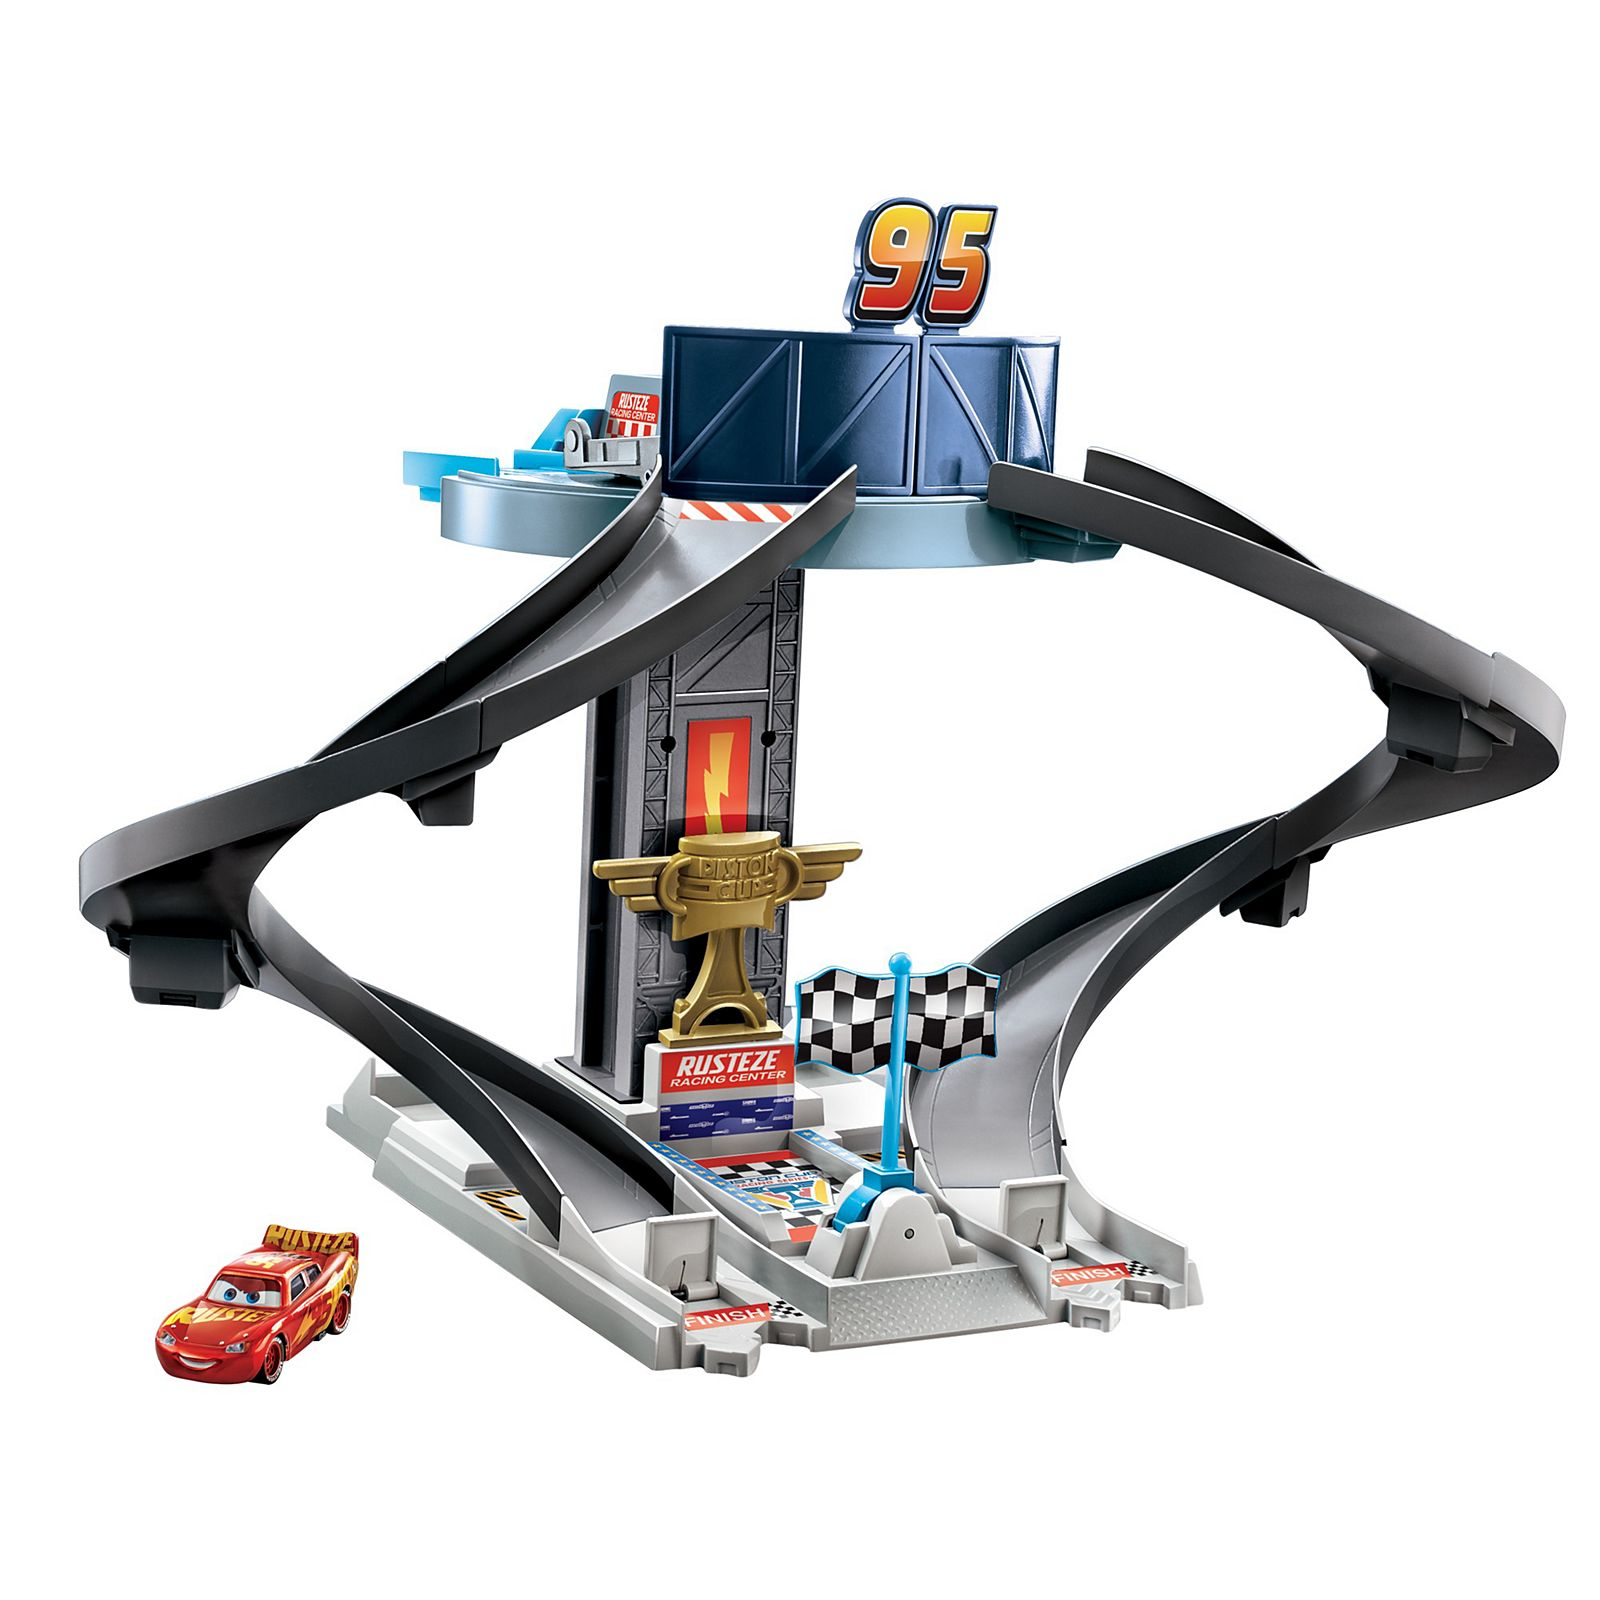 Disney Pixar Cars Rust Eze Racing Tower Mattel